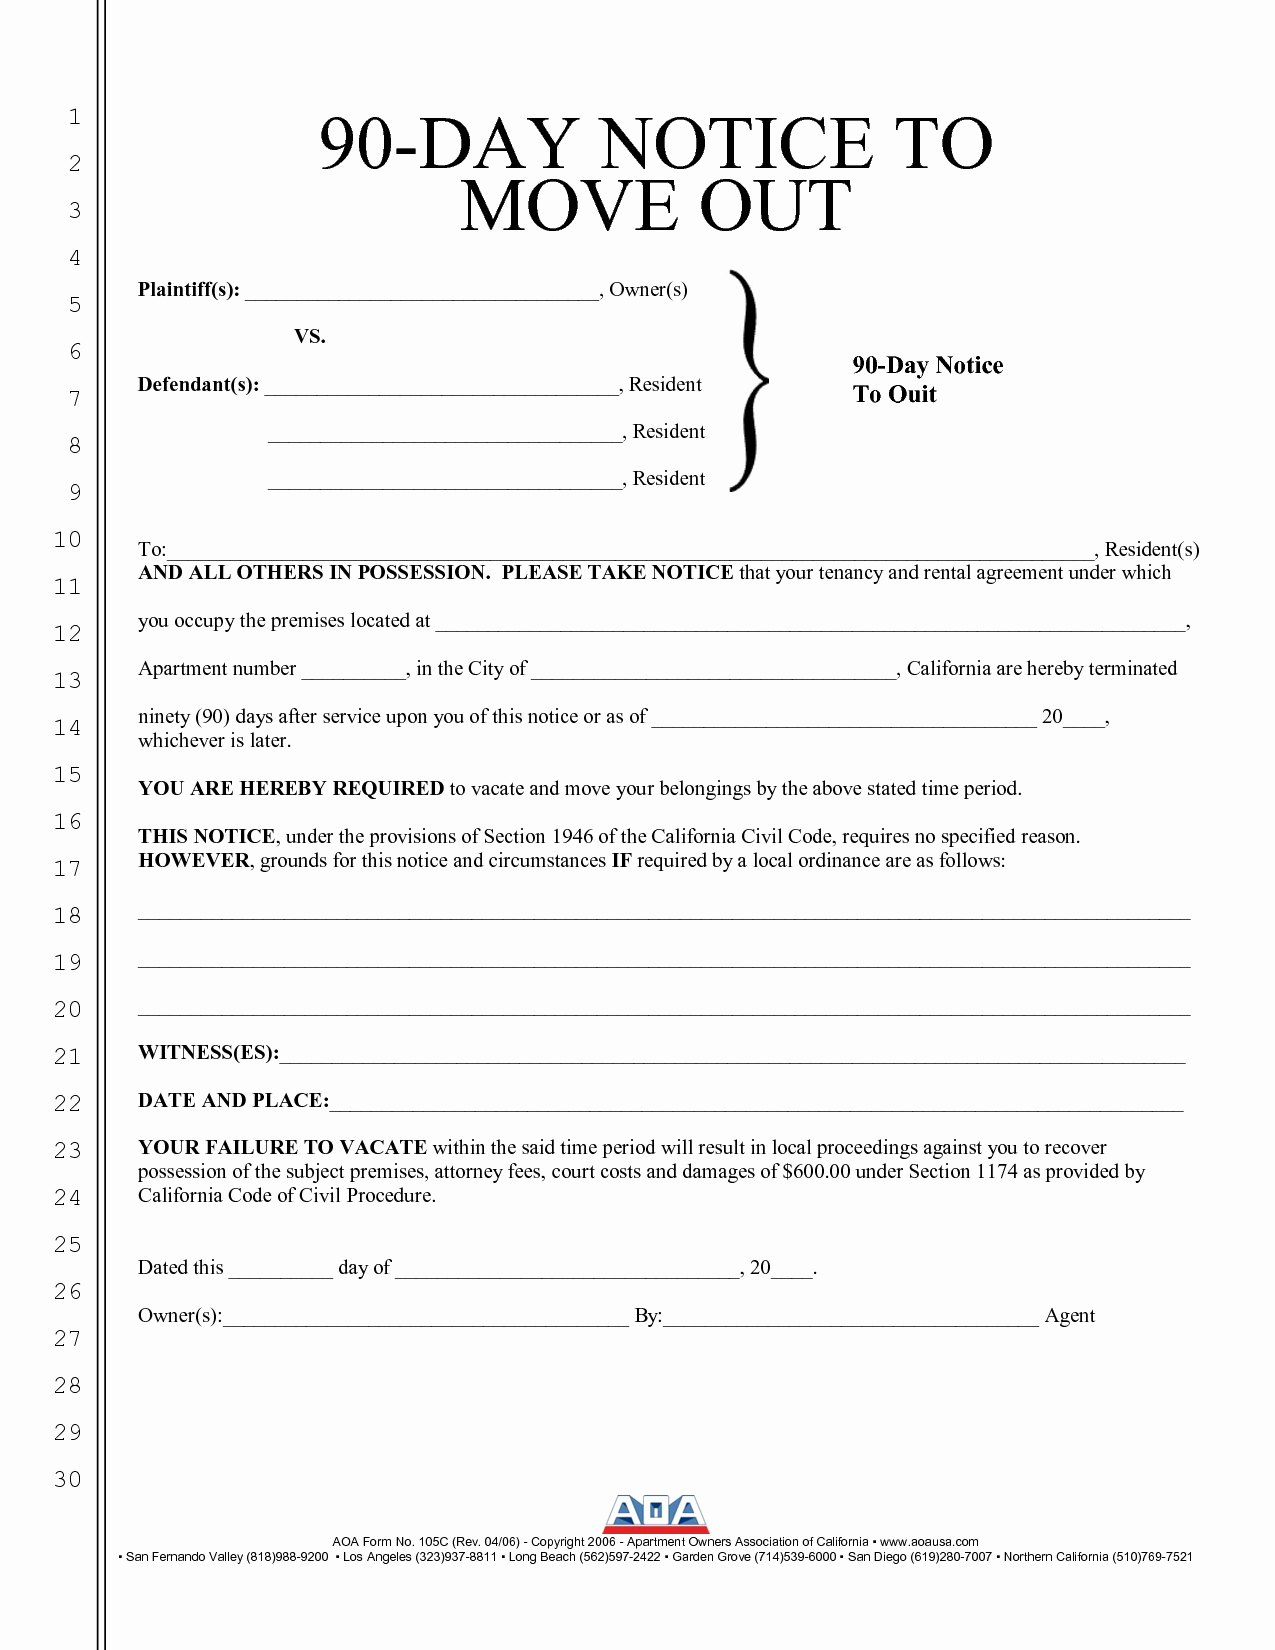 Move Out Letter Unique Best S Of Move Out Notice to Tenant Template 30 Day